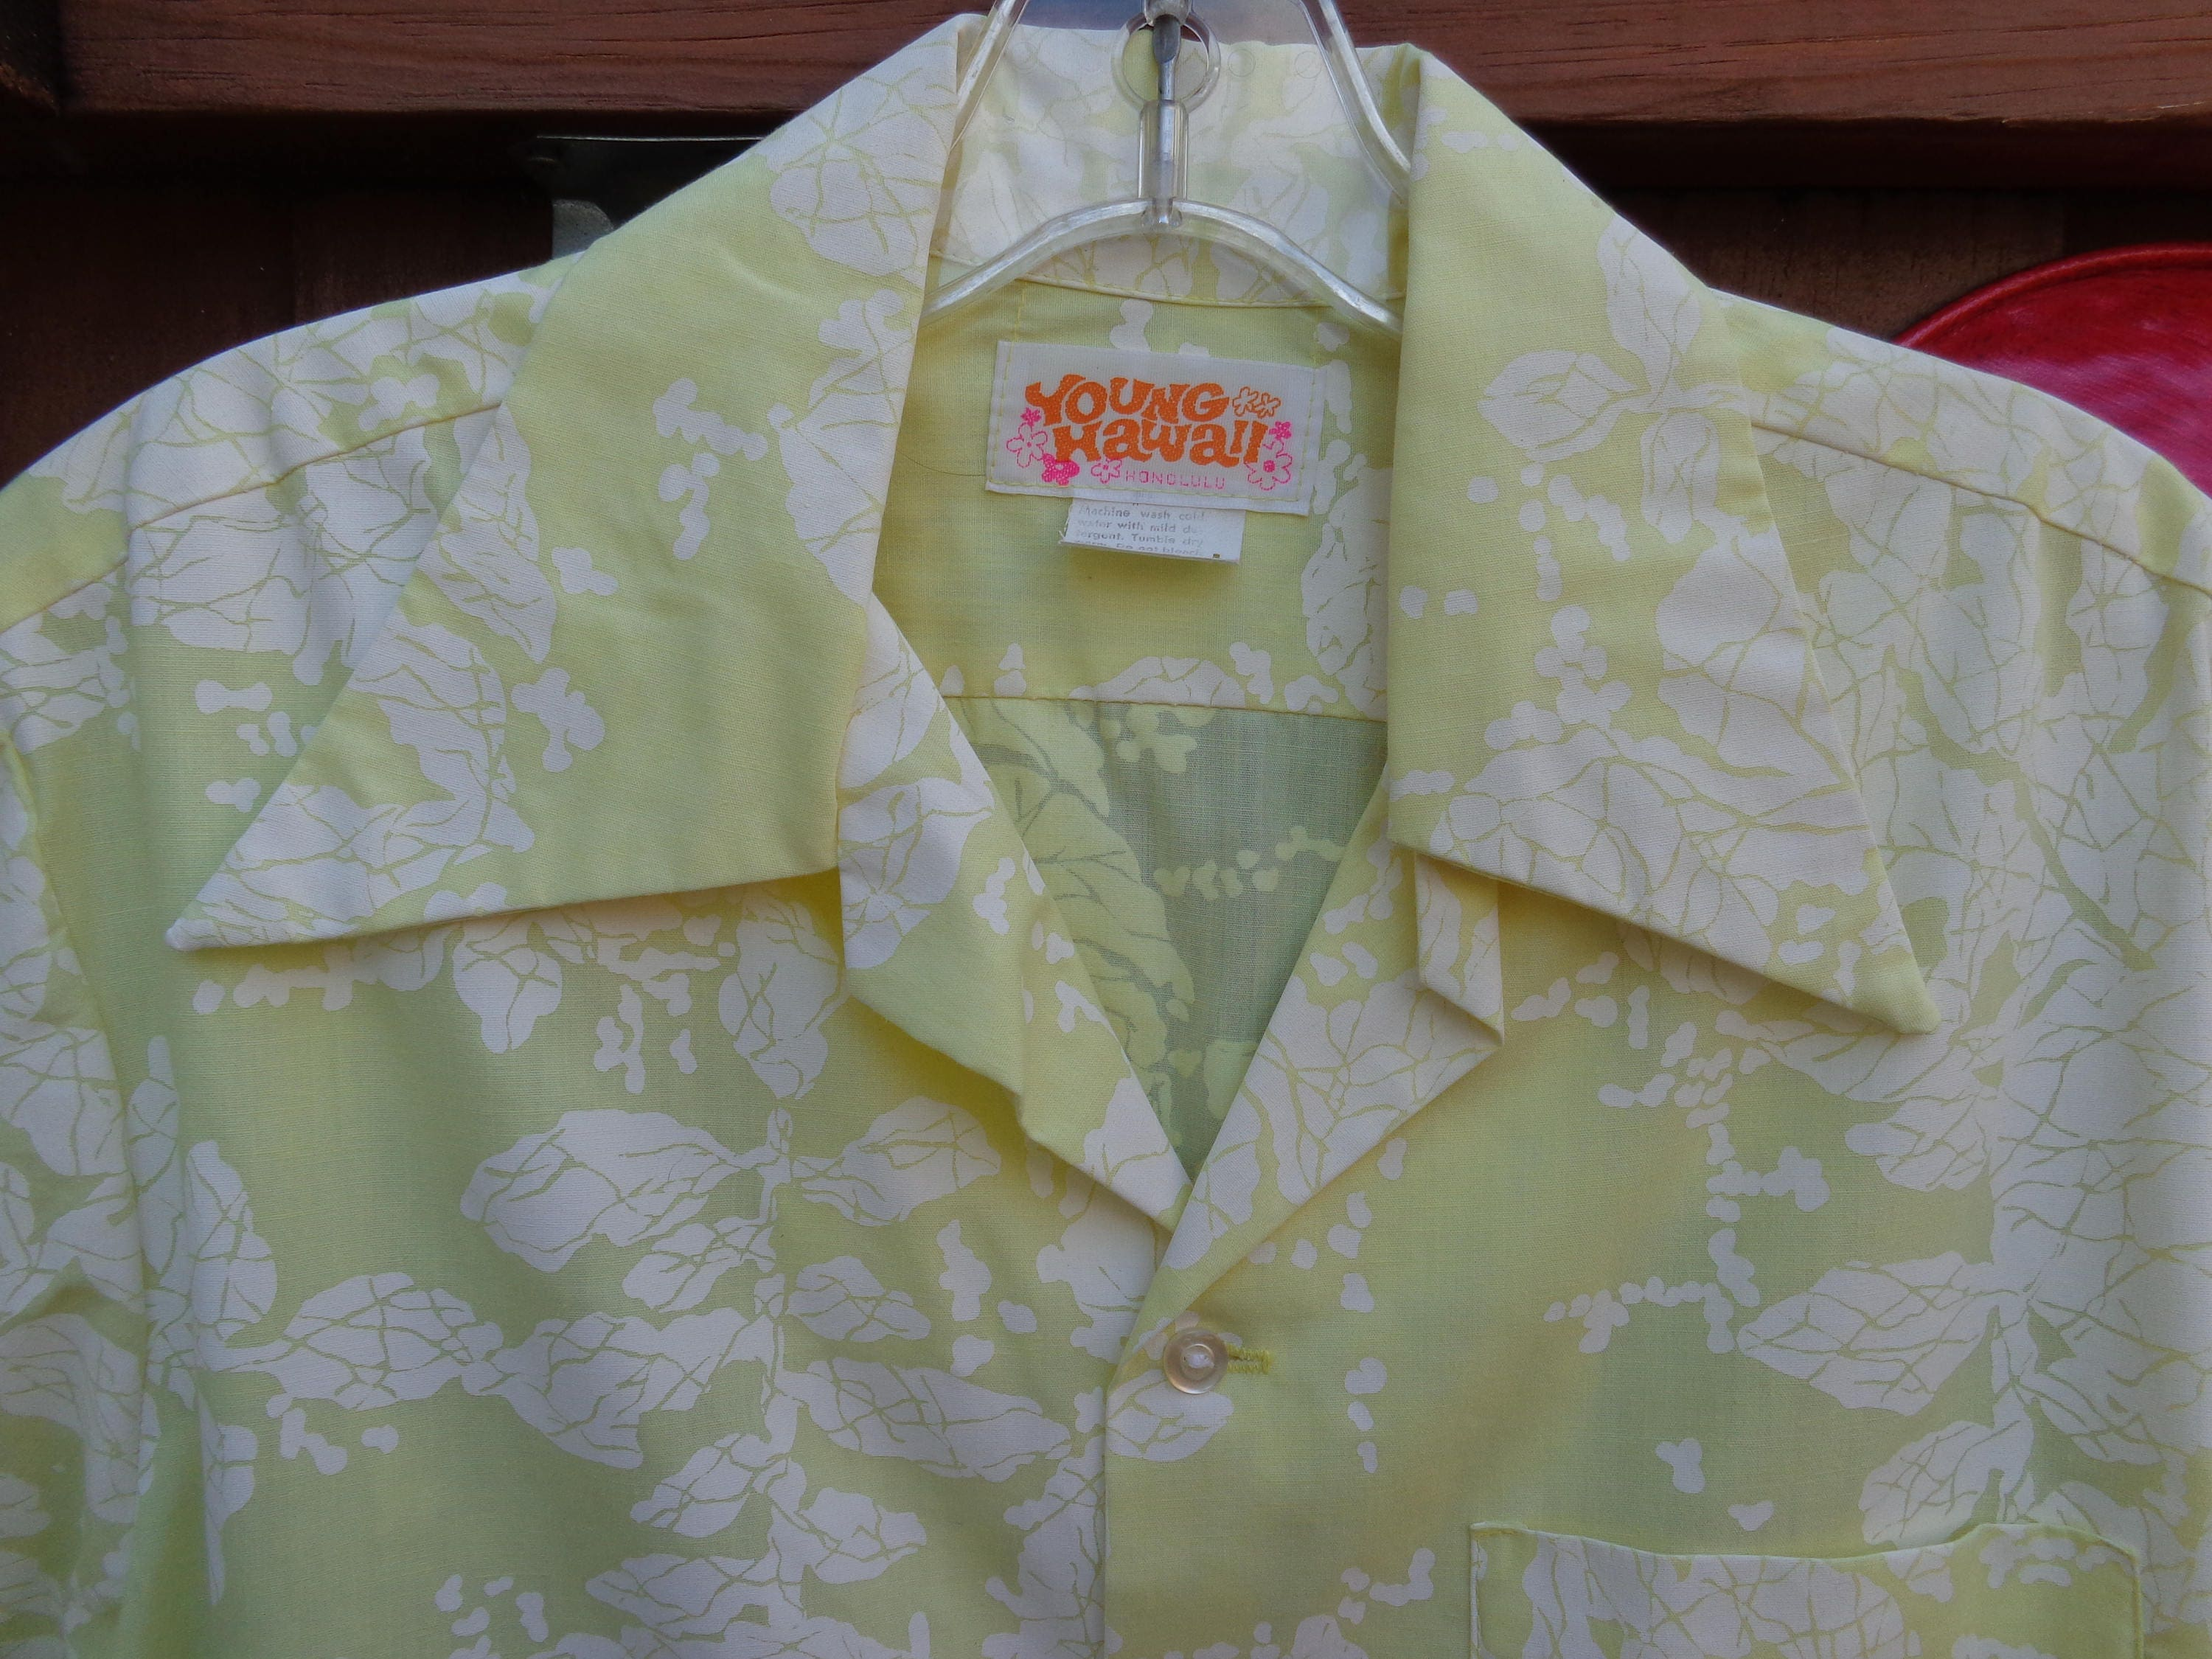 1970s Men's Shirt Styles – Vintage 70s Shirts for Guys Young Hawaii 1970s Hawaiian Shirt Mens Pale Yellow  White $45.00 AT vintagedancer.com